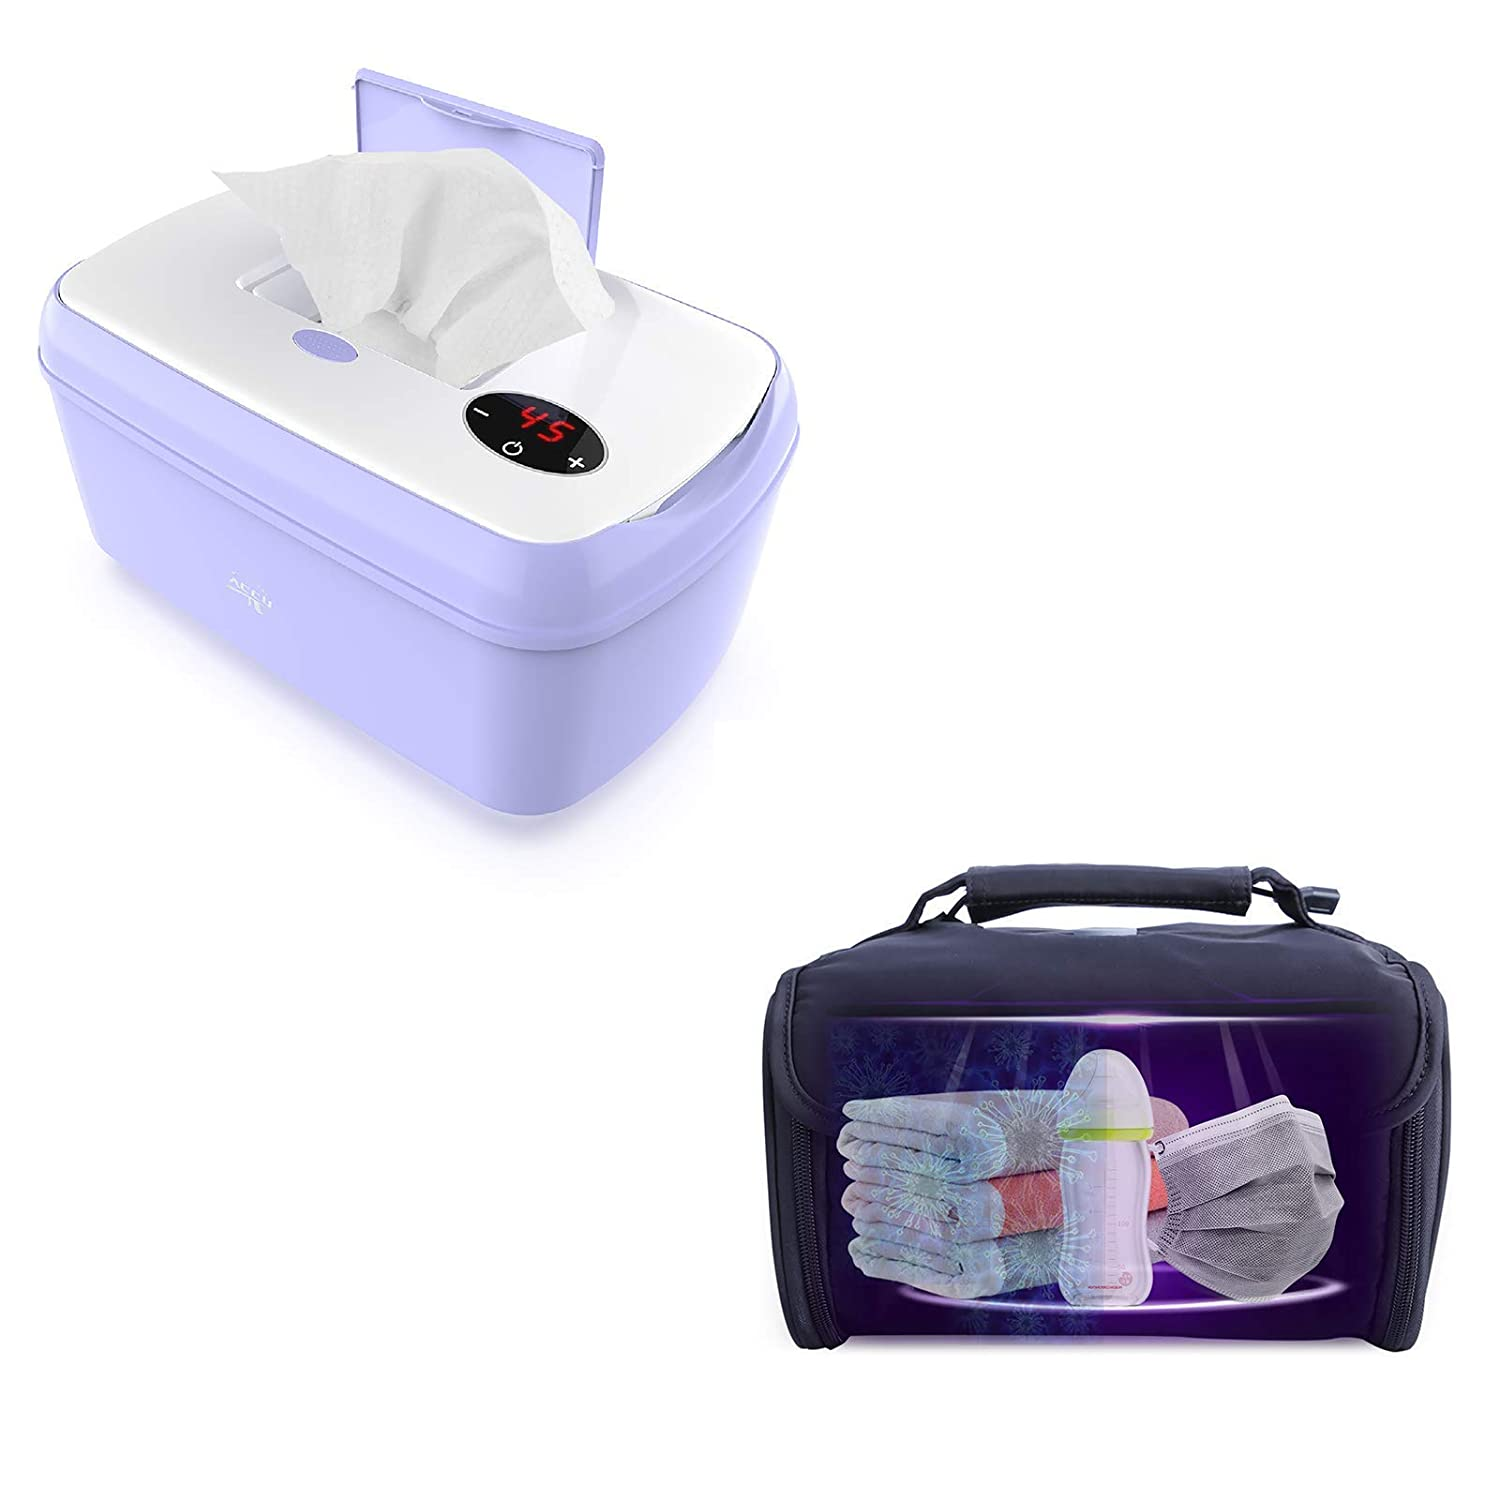 Family Care Set Package: New Upgrade Super special price Wipe and LED Light Warmer C Time sale